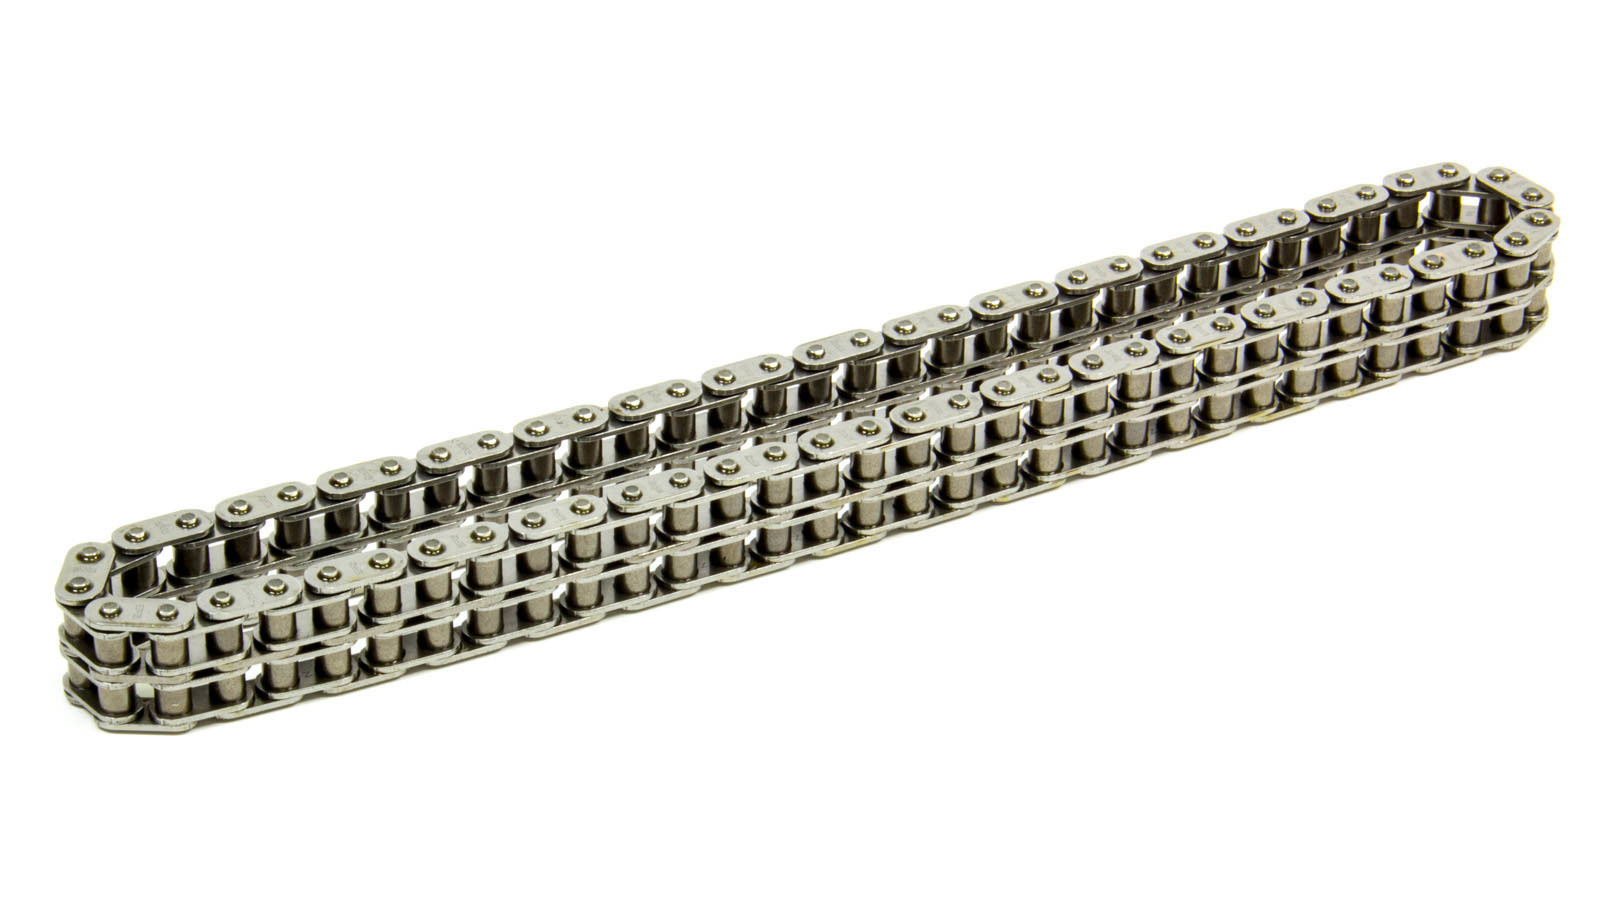 Rollmaster-Romac 3DR66-2 Timing Chain, Double Roller, 66 Link, Each